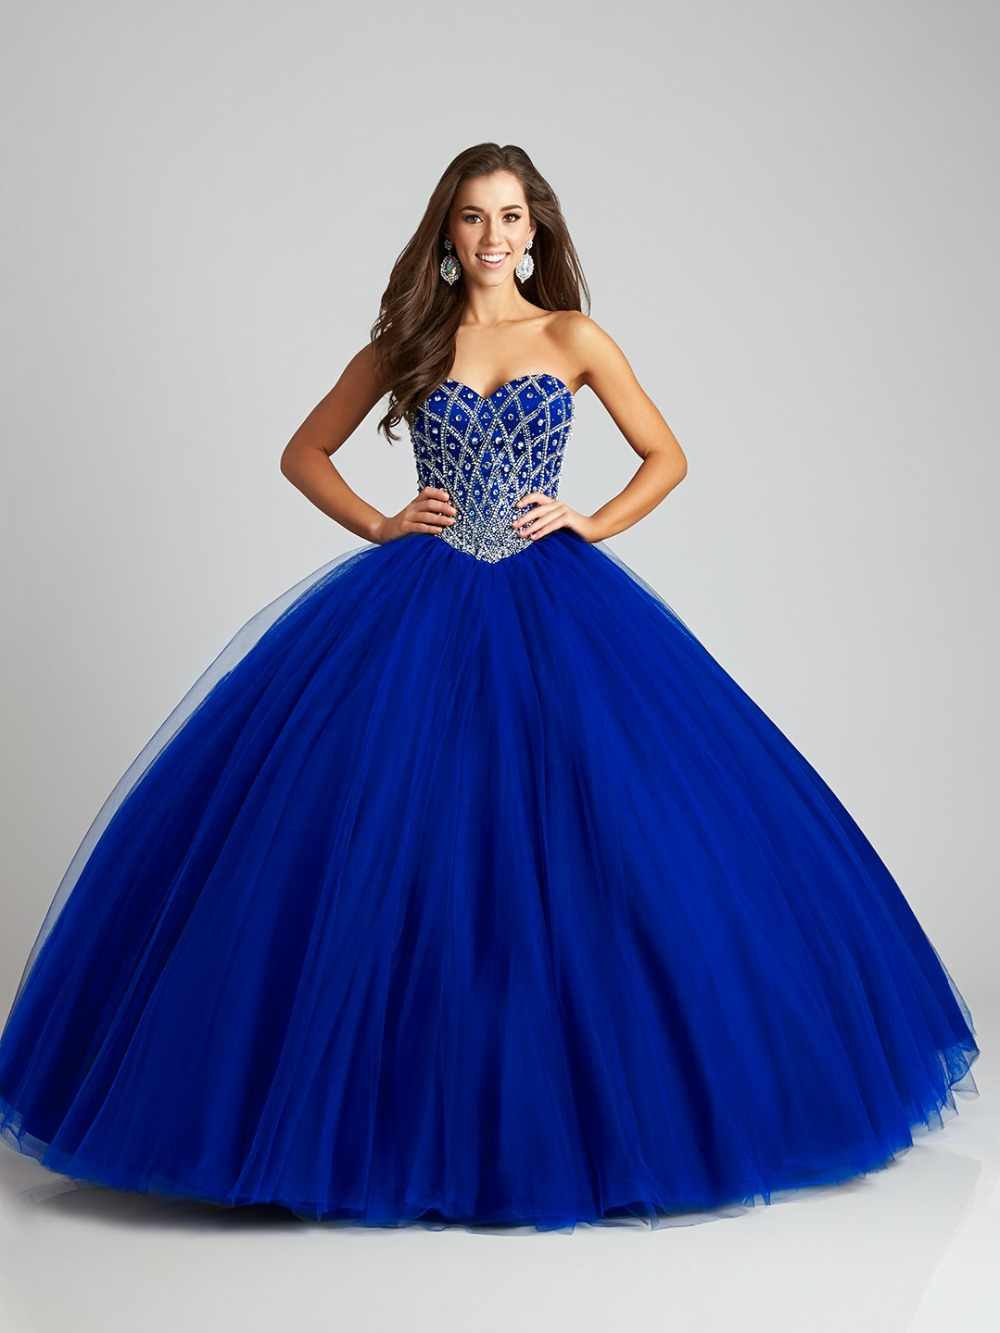 Compare Prices on Royal Blue Quinceanera Dresses- Online Shopping ...